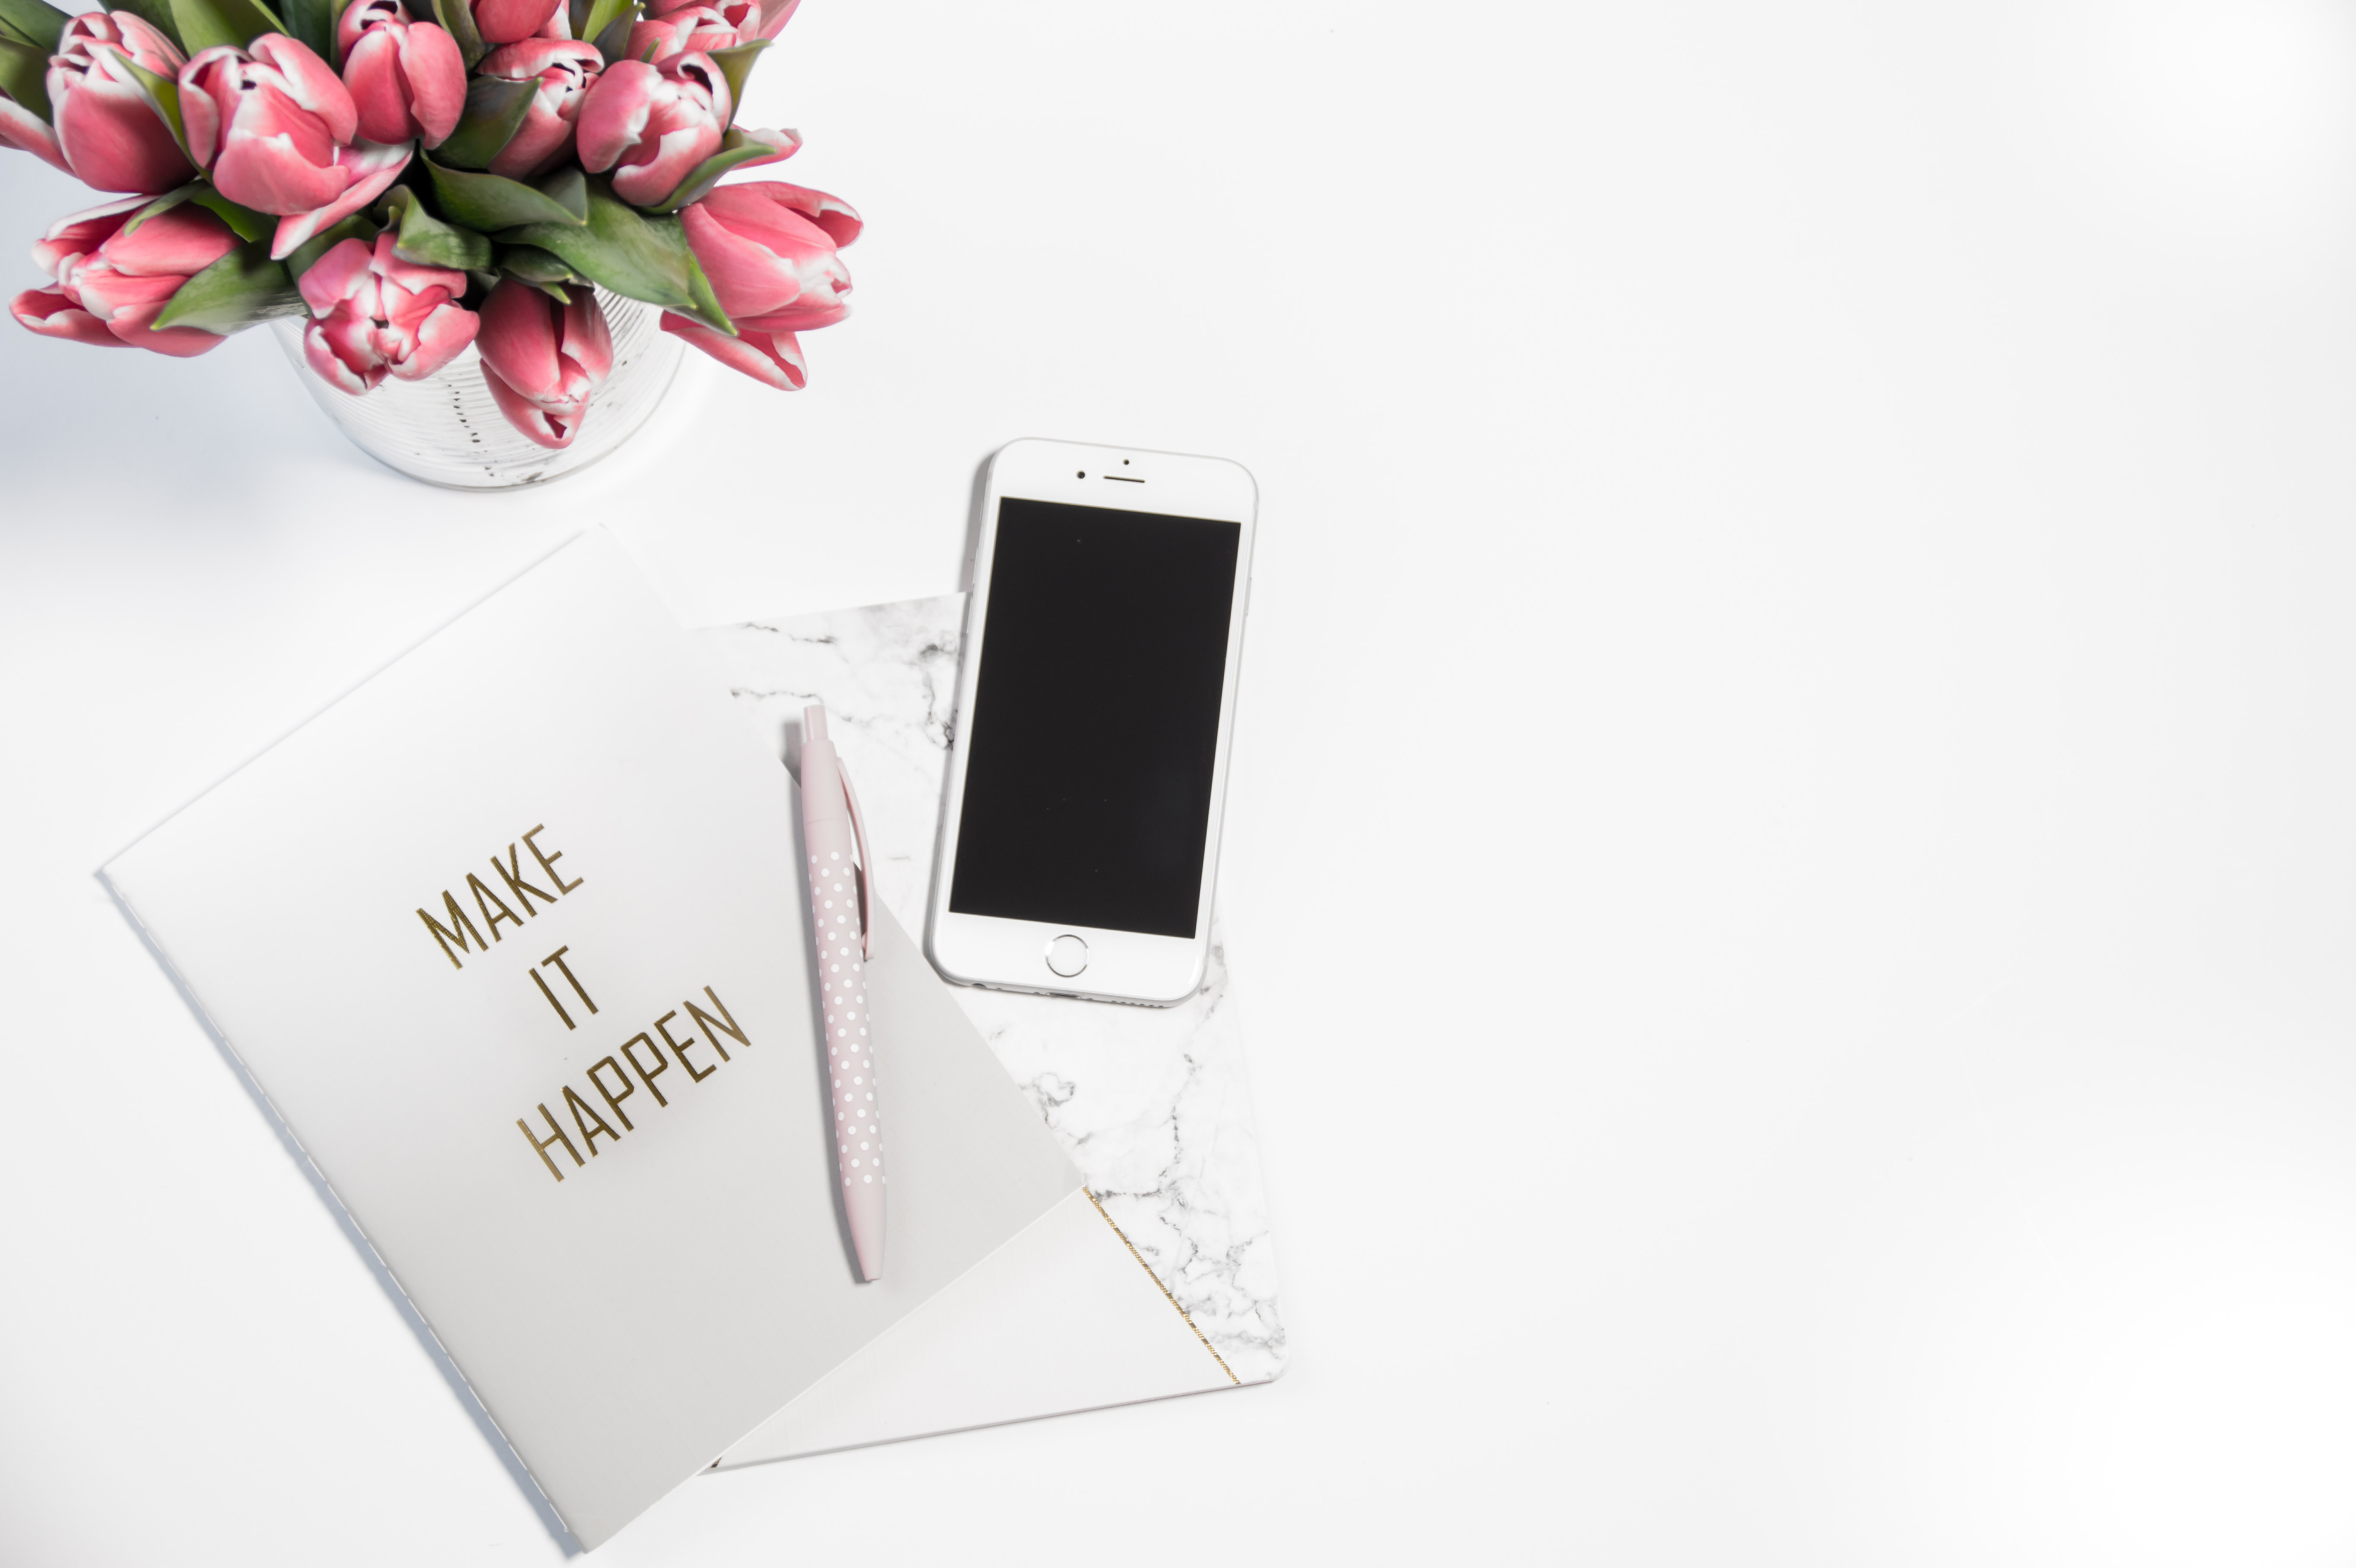 Silver Iphone 6 Beside Click Pen and Card, Ballpen, White background, White, Tulips, HQ Photo